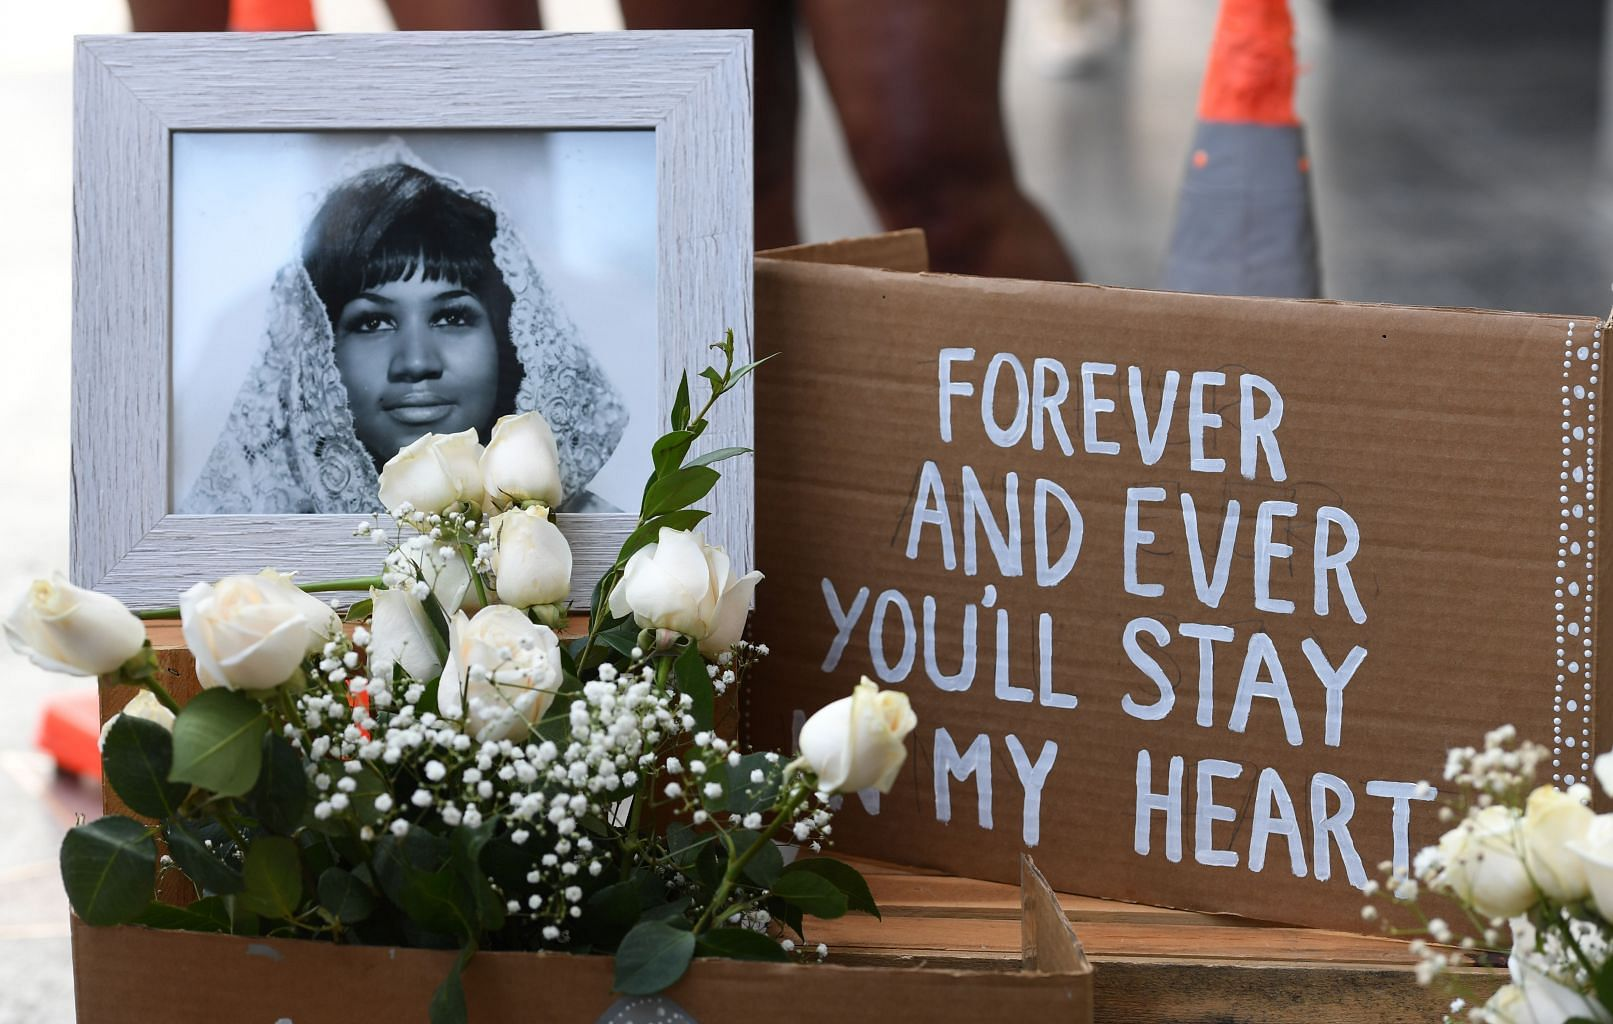 Aretha Franklins Funeral Set For Aug 31 In Detroit Report